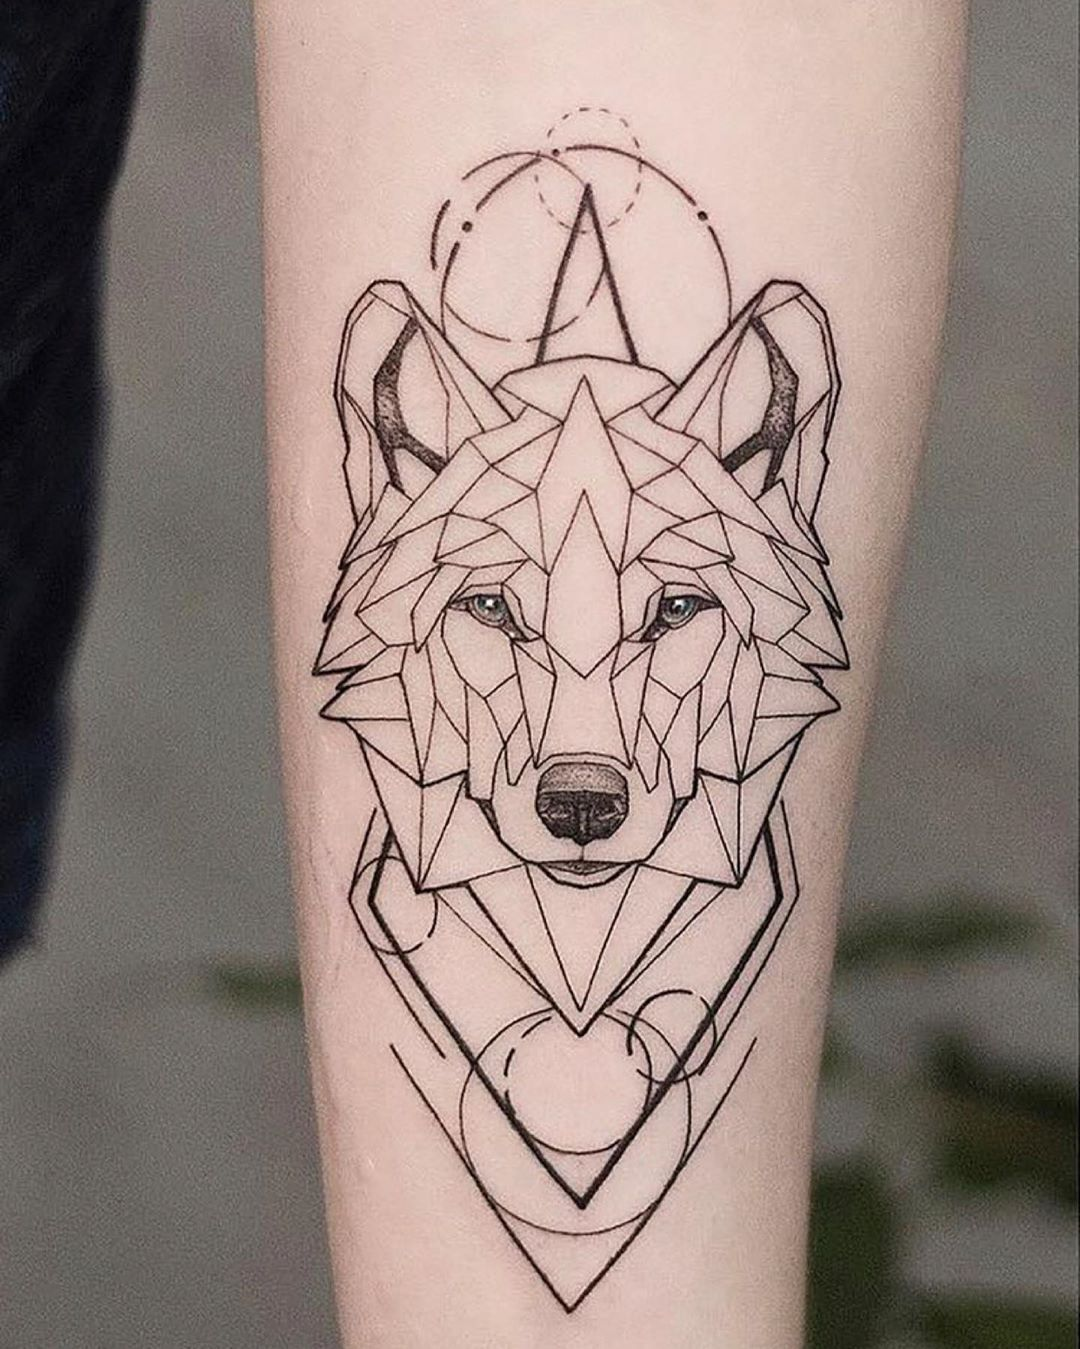 Wolf Tattoo Soda Sodatattoo Saigontattoo Vietnamtattoo Blackwork Blacktattoo Blac Geometric Wolf Tattoo Geometric Tattoos Men Geometric Animal Tattoo